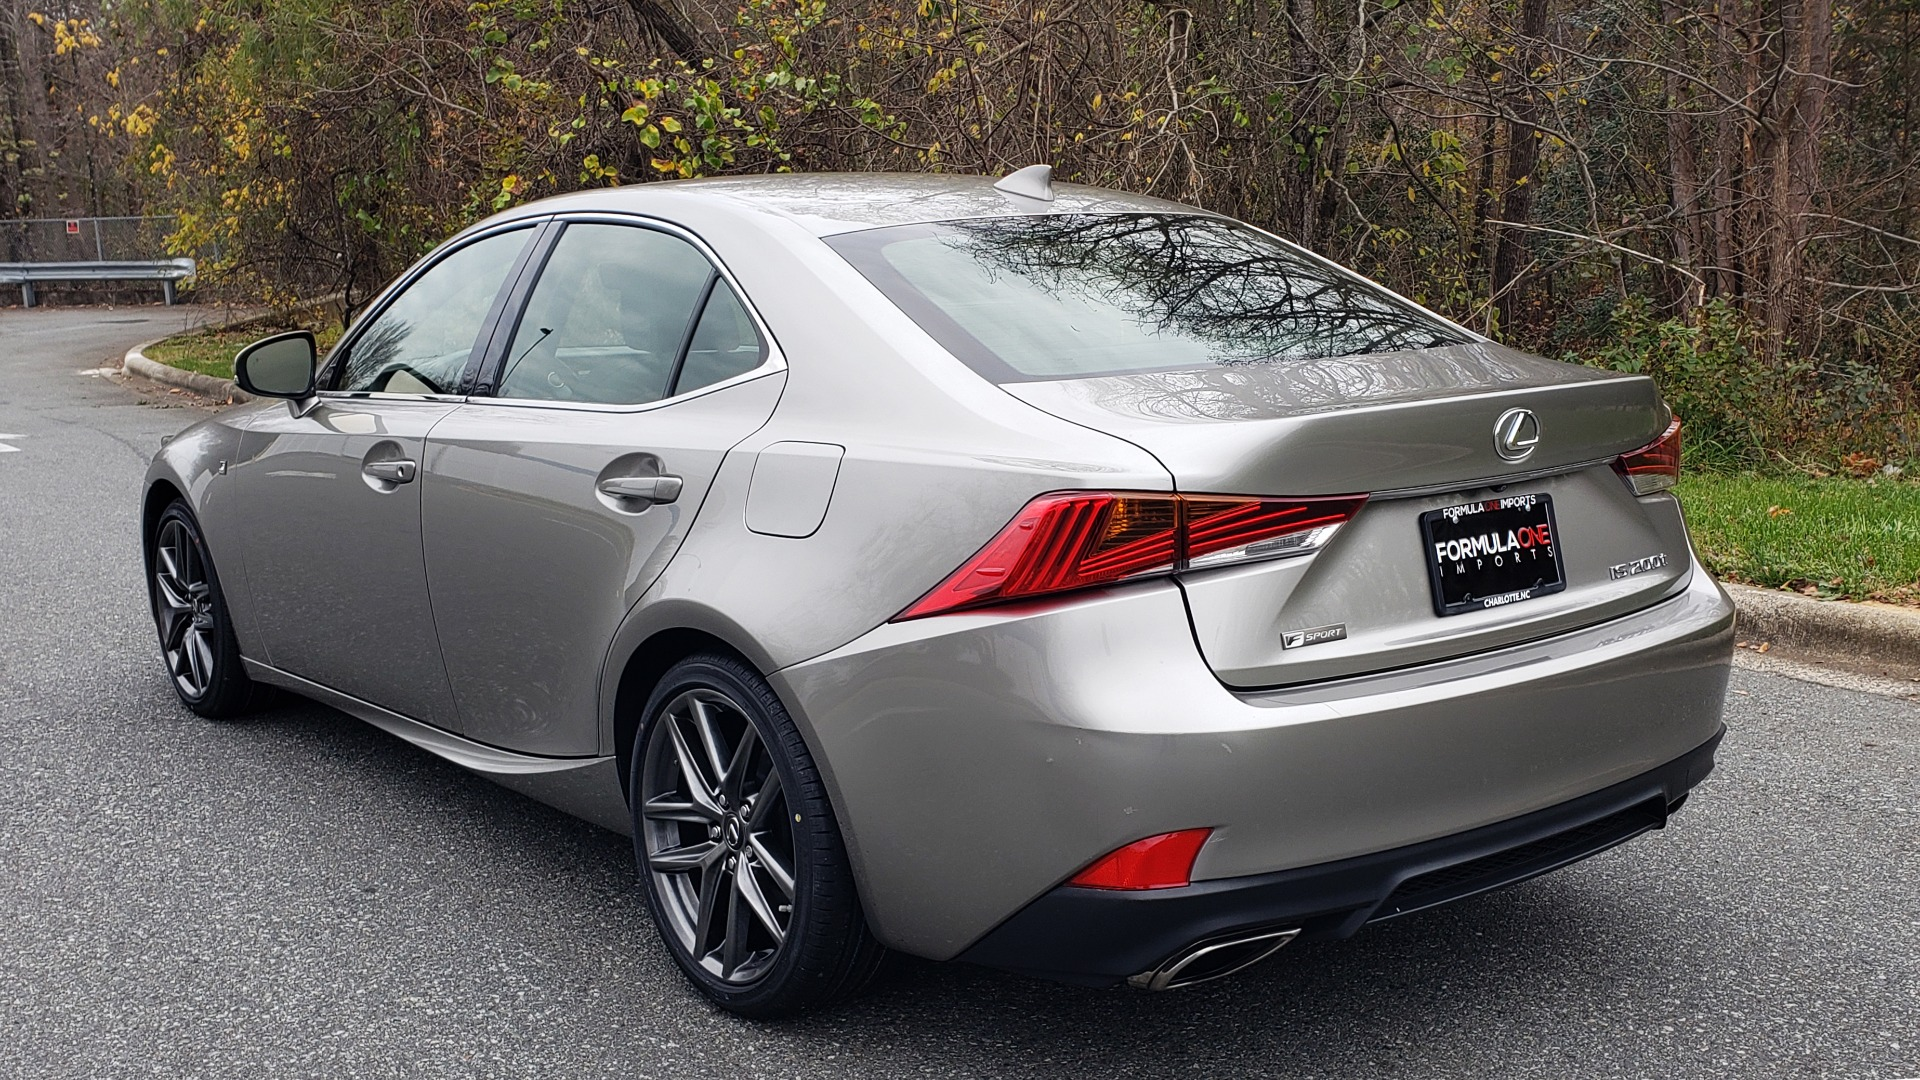 Used 2017 Lexus IS 200 TURBO F-SPORT / BSM / SUNROOF / VENT SEATS / REARVIEW for sale Sold at Formula Imports in Charlotte NC 28227 3